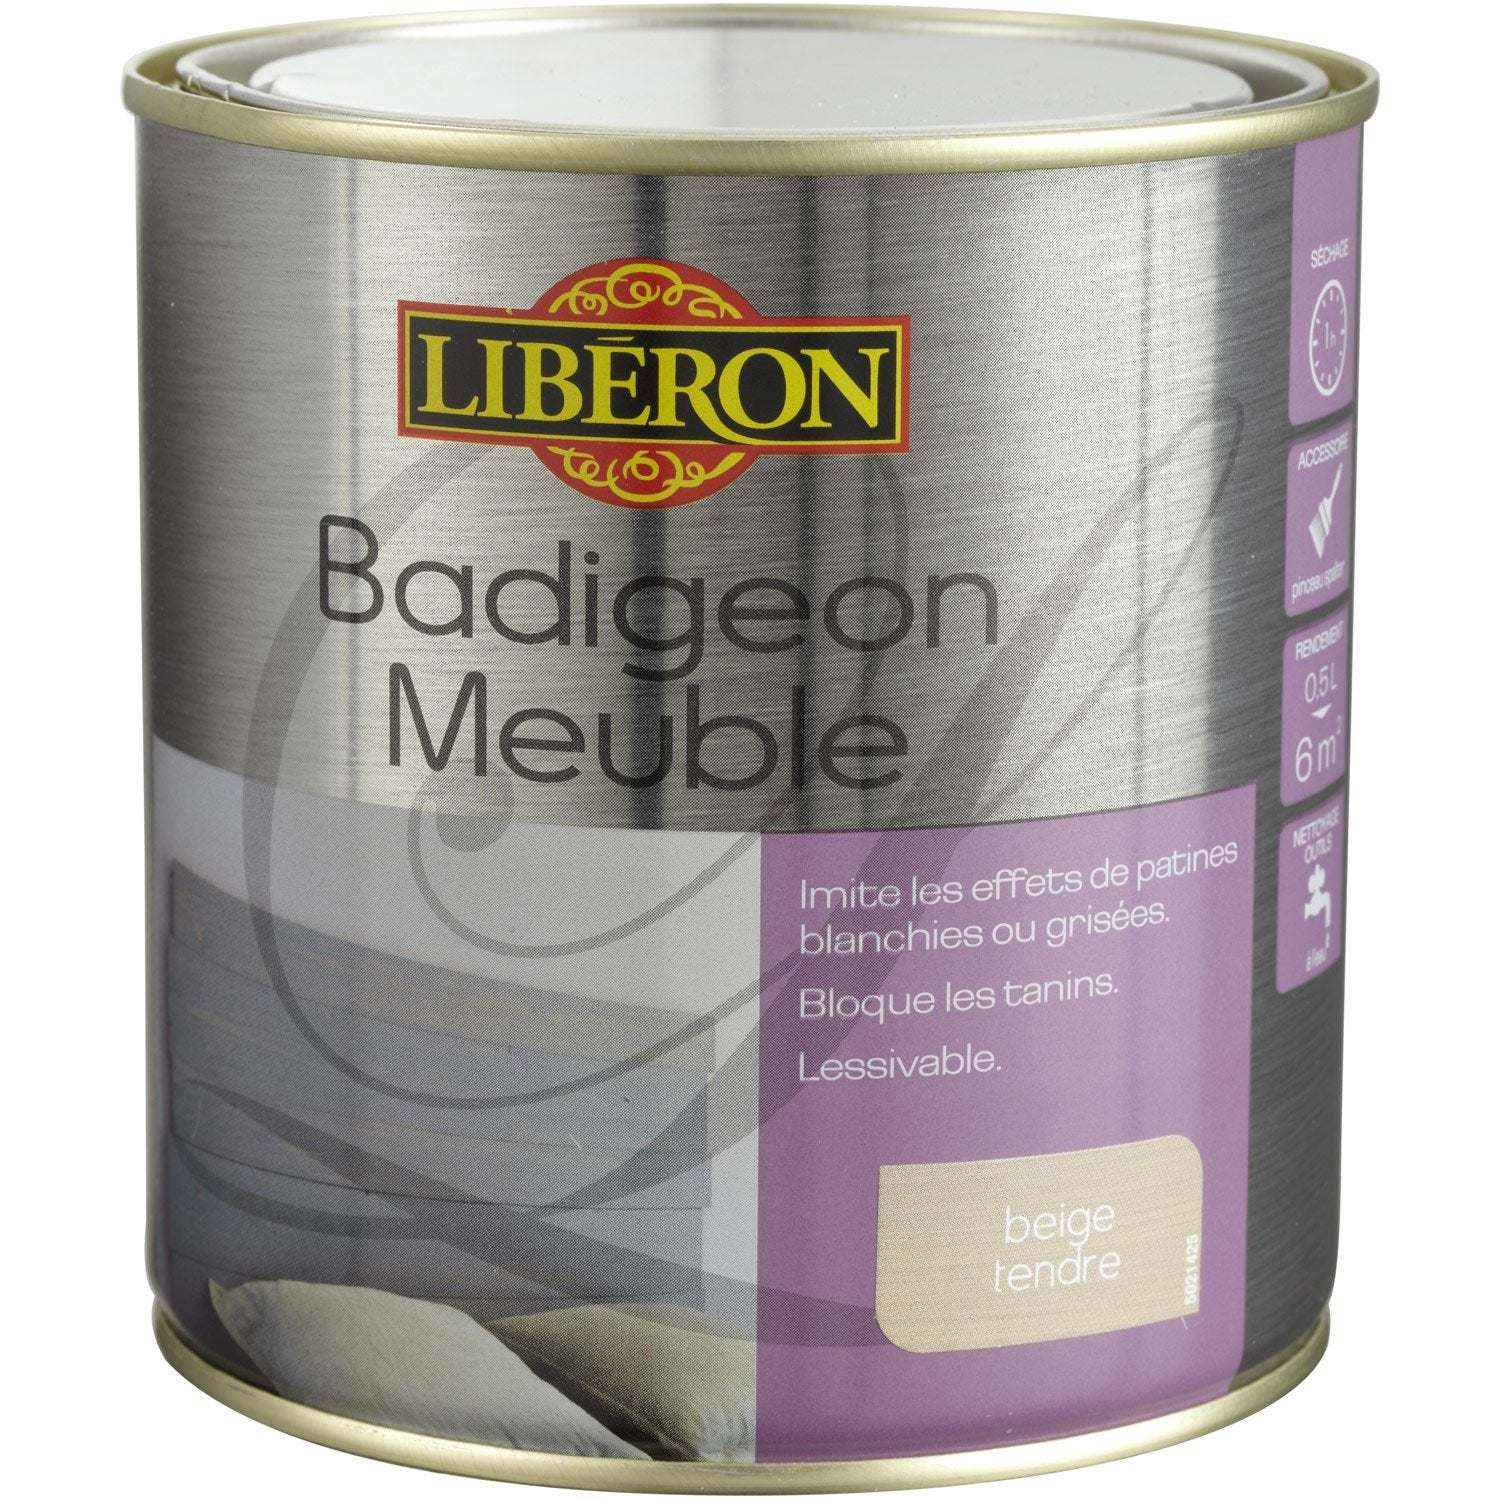 Lasure badigeon meuble liberon beige tendre 0 5 l for Liberon badigeon meuble